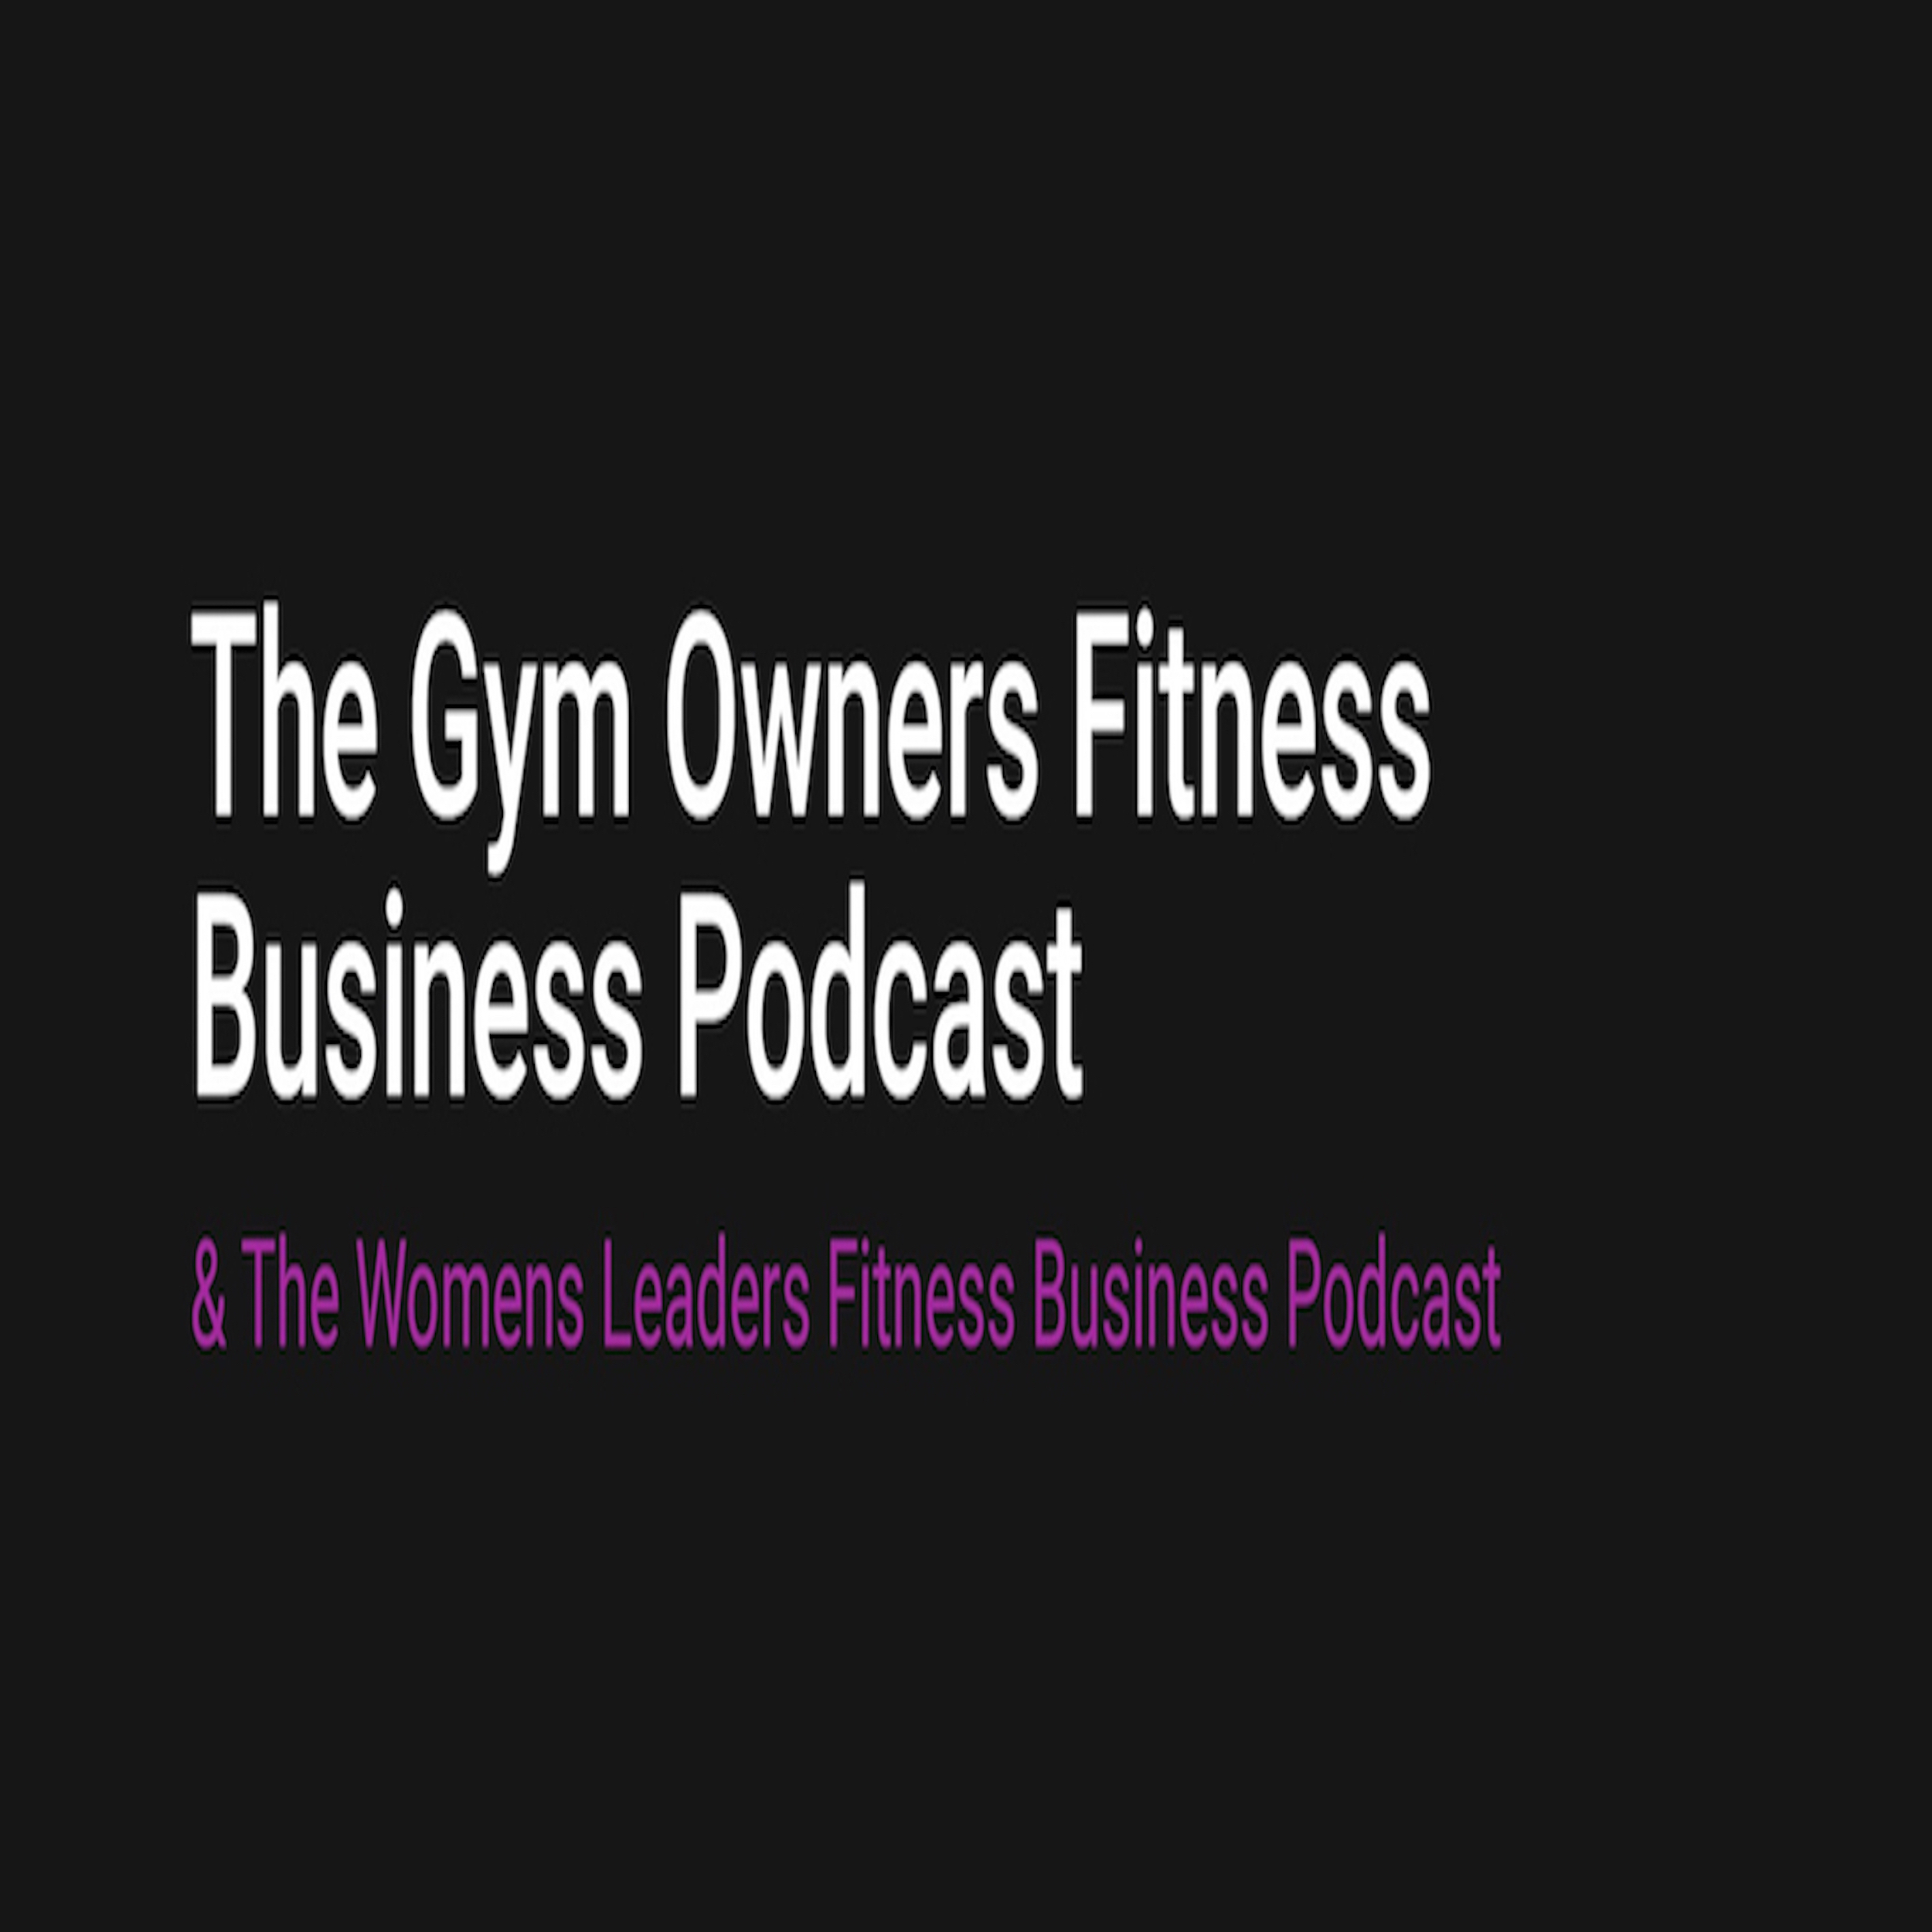 The Gym Owners Fitness Business Podcast